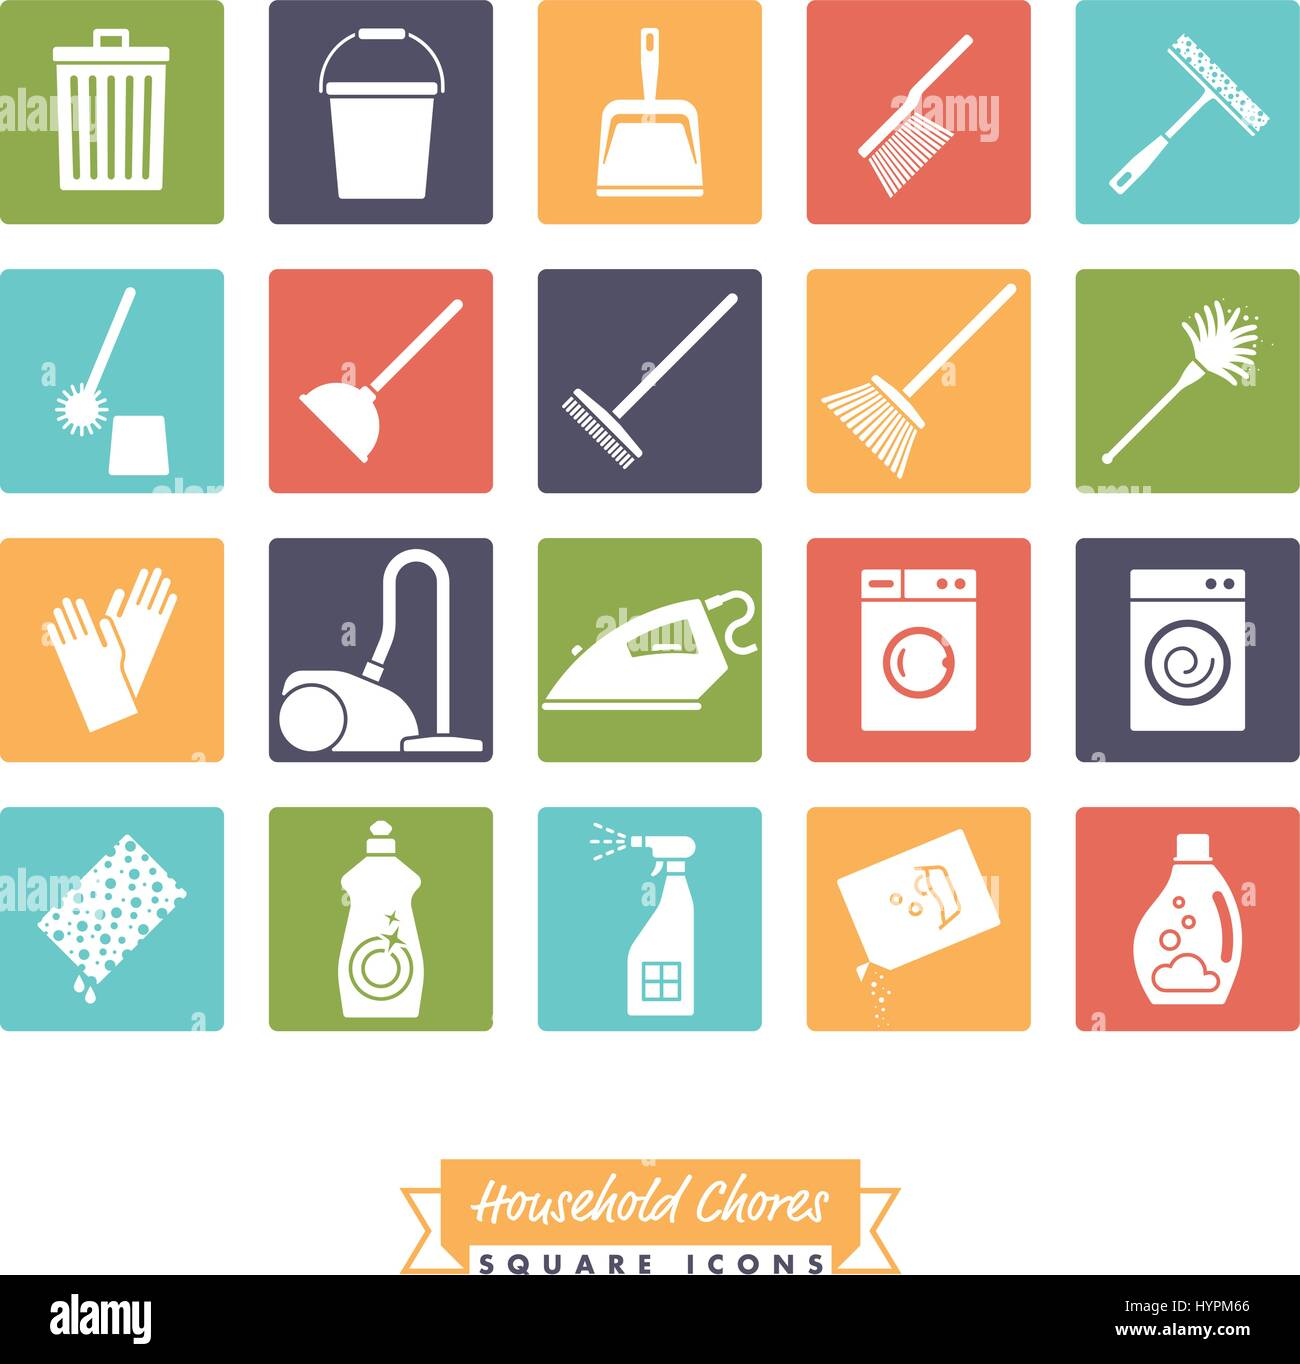 Collection Of 20 Household Chores Icons Negative In